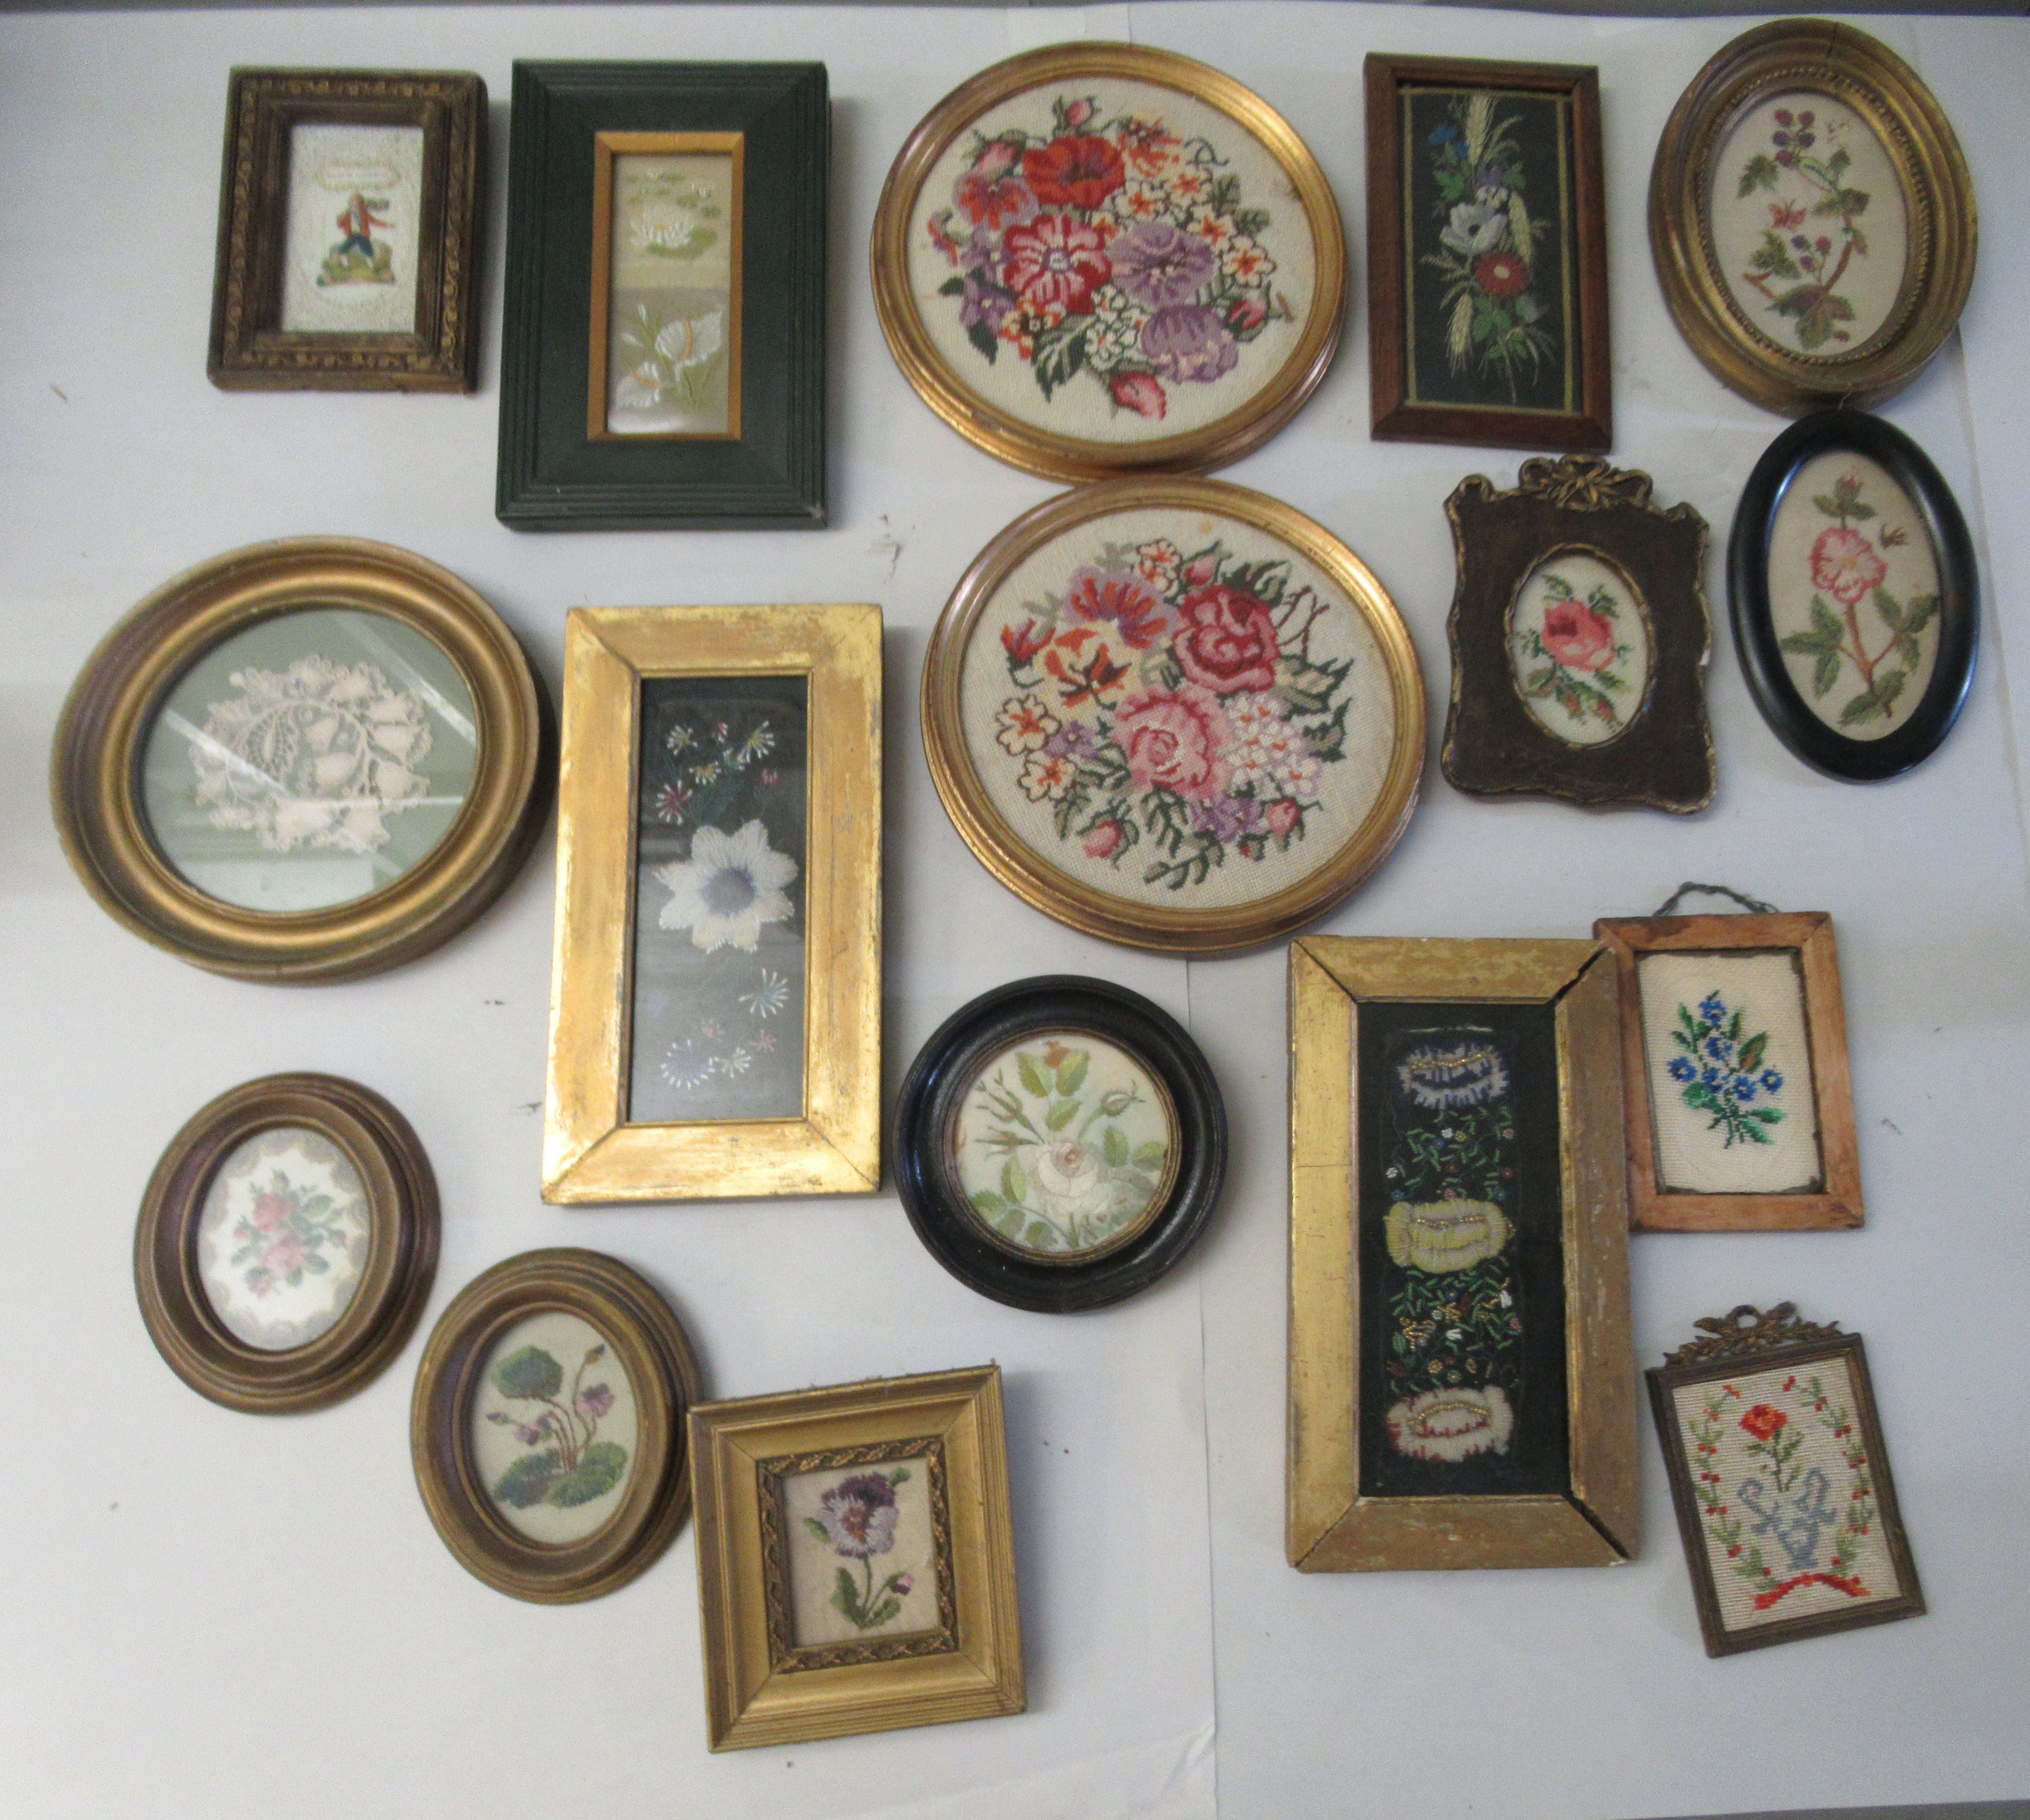 19th and 20thC embroidered tapestry panels various designs & sizes framed